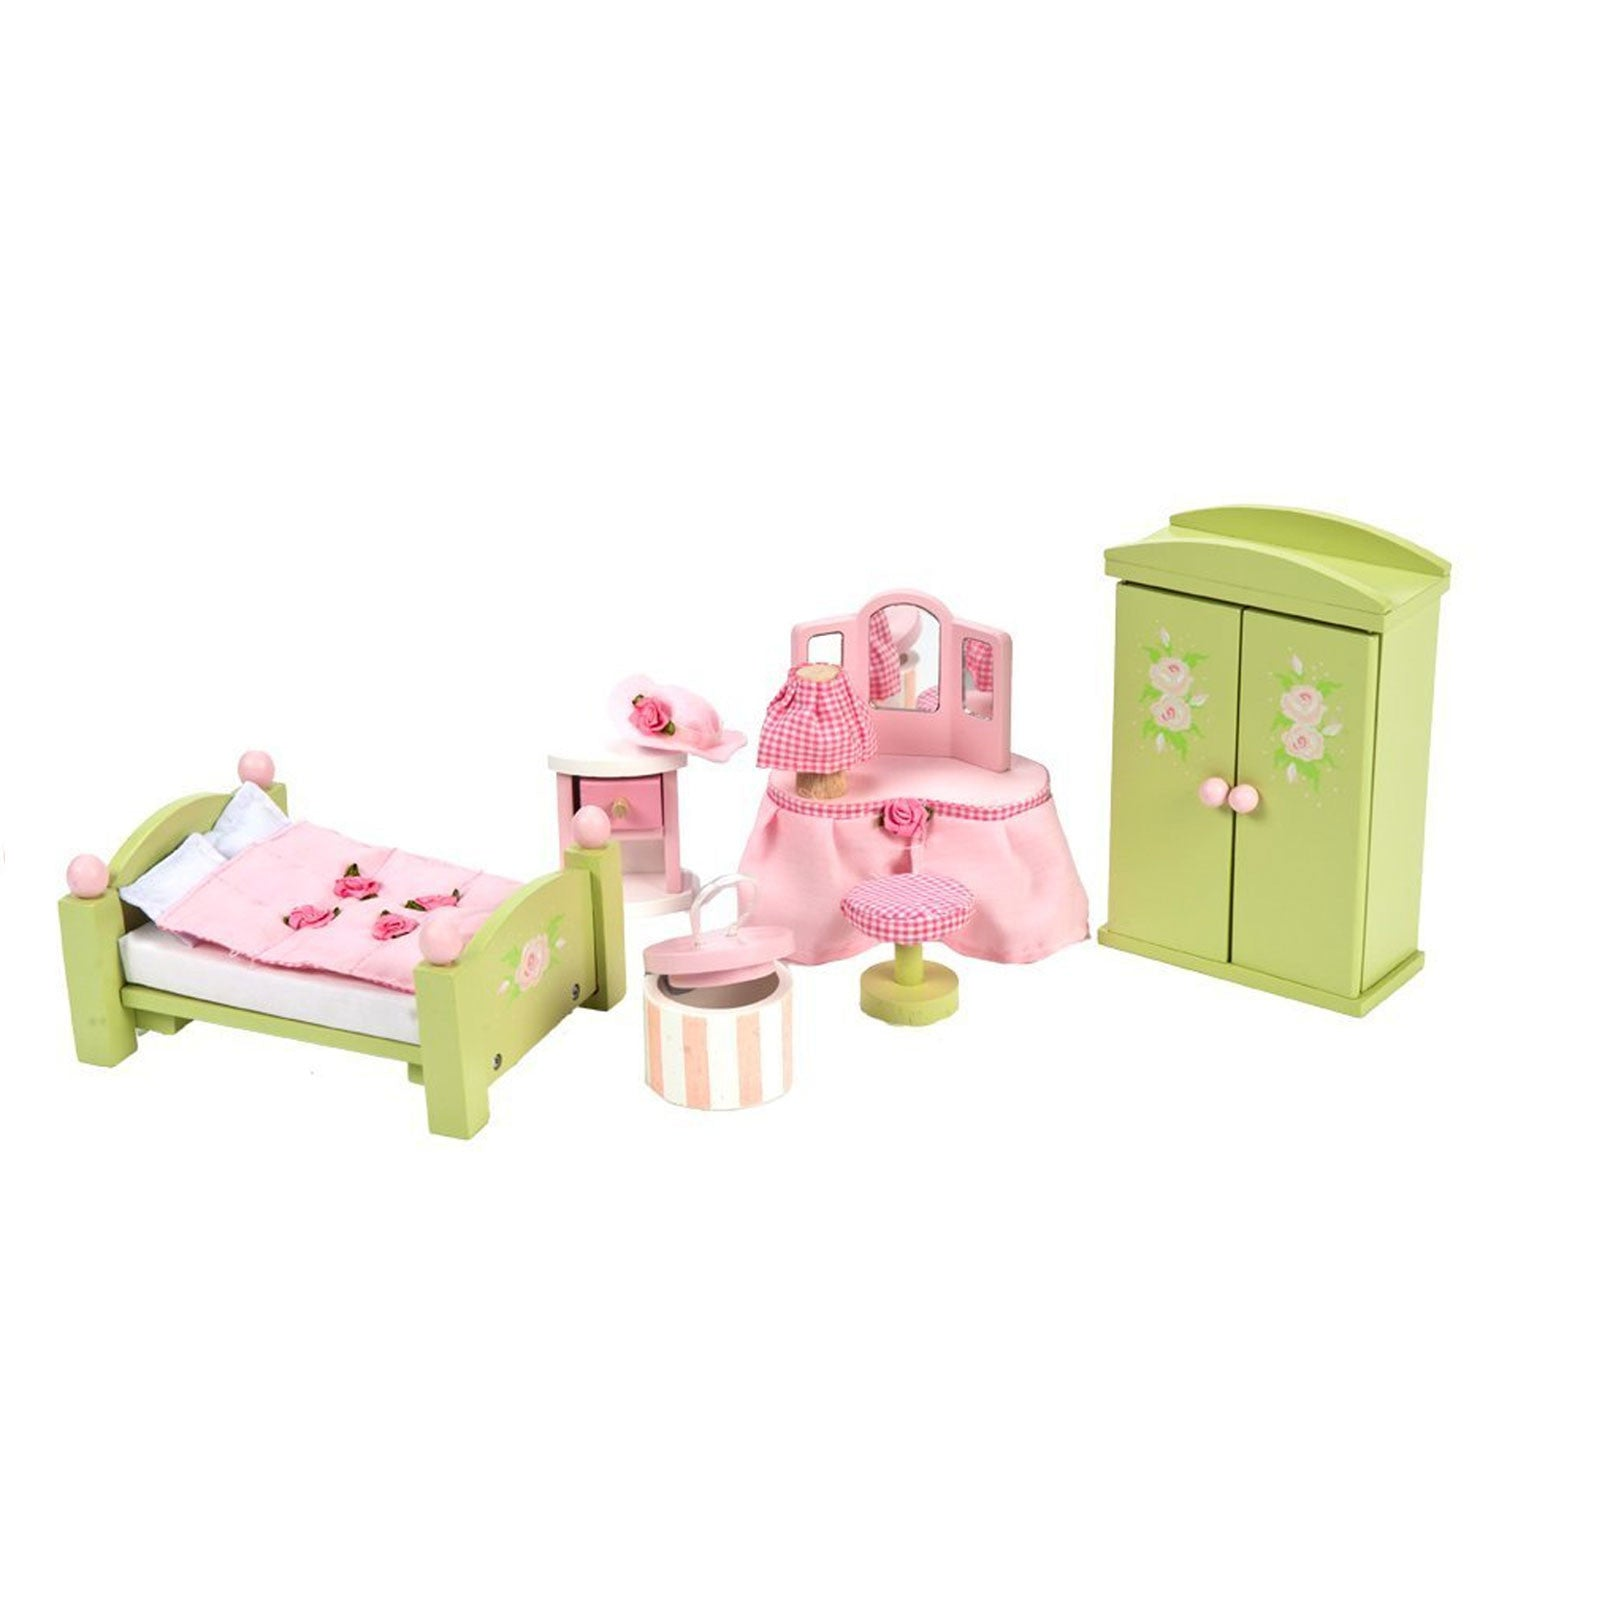 Le Toy Van Dolls House Furniture Le Toy Van Dollhouse Accessories Master Bedroom at Little Earth Nest Eco Shop